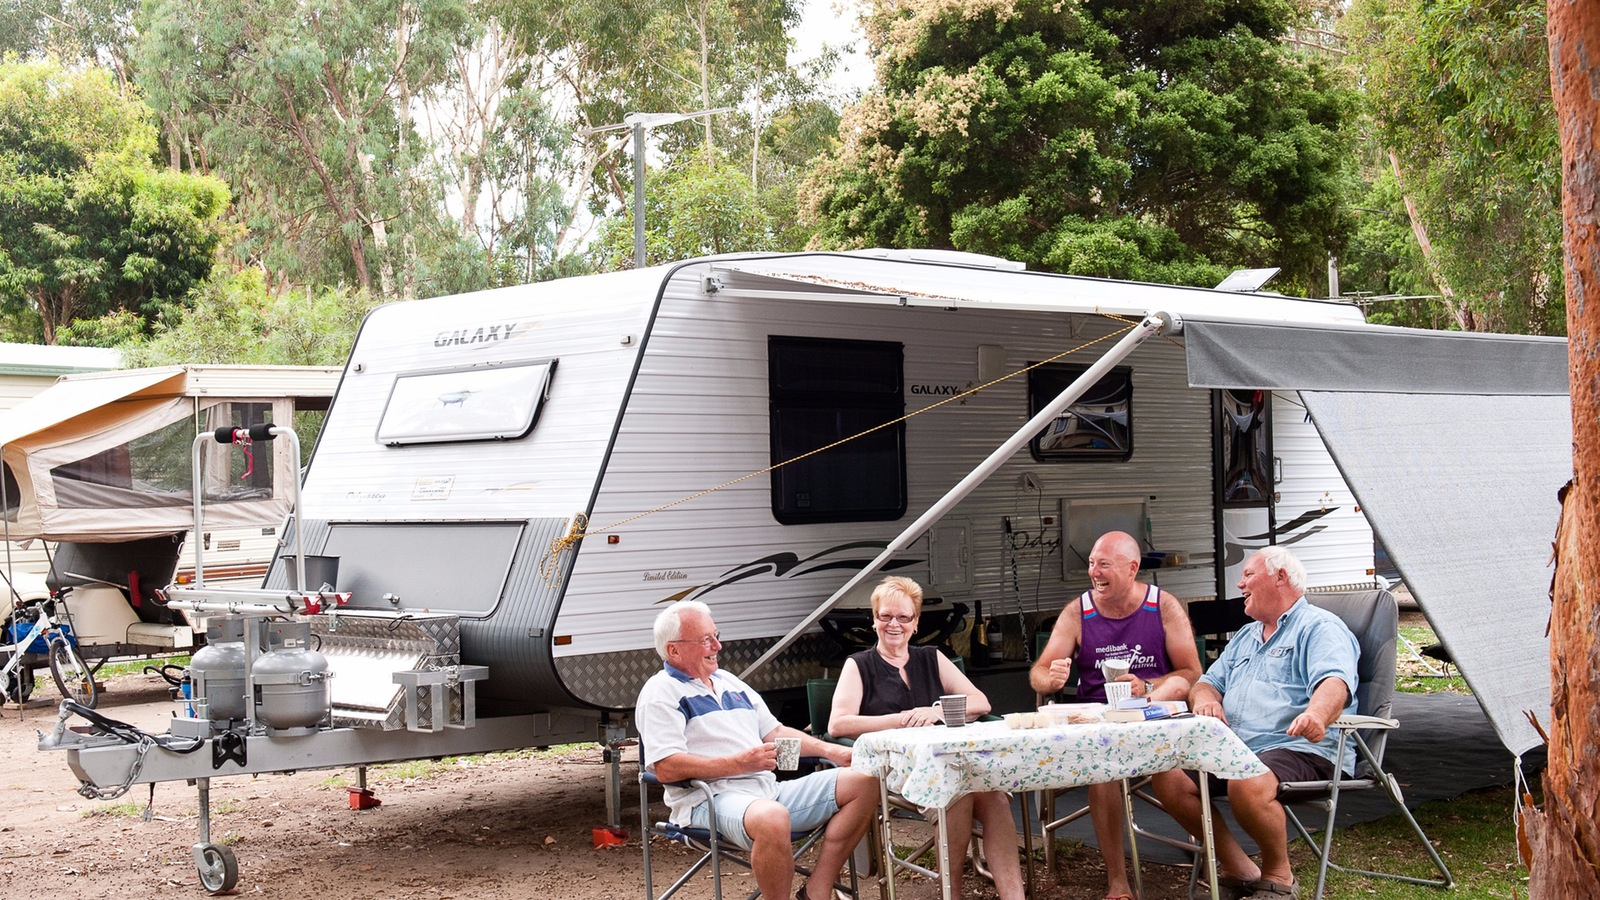 4 people enjoying a meal outside their caravan site at the holiday park